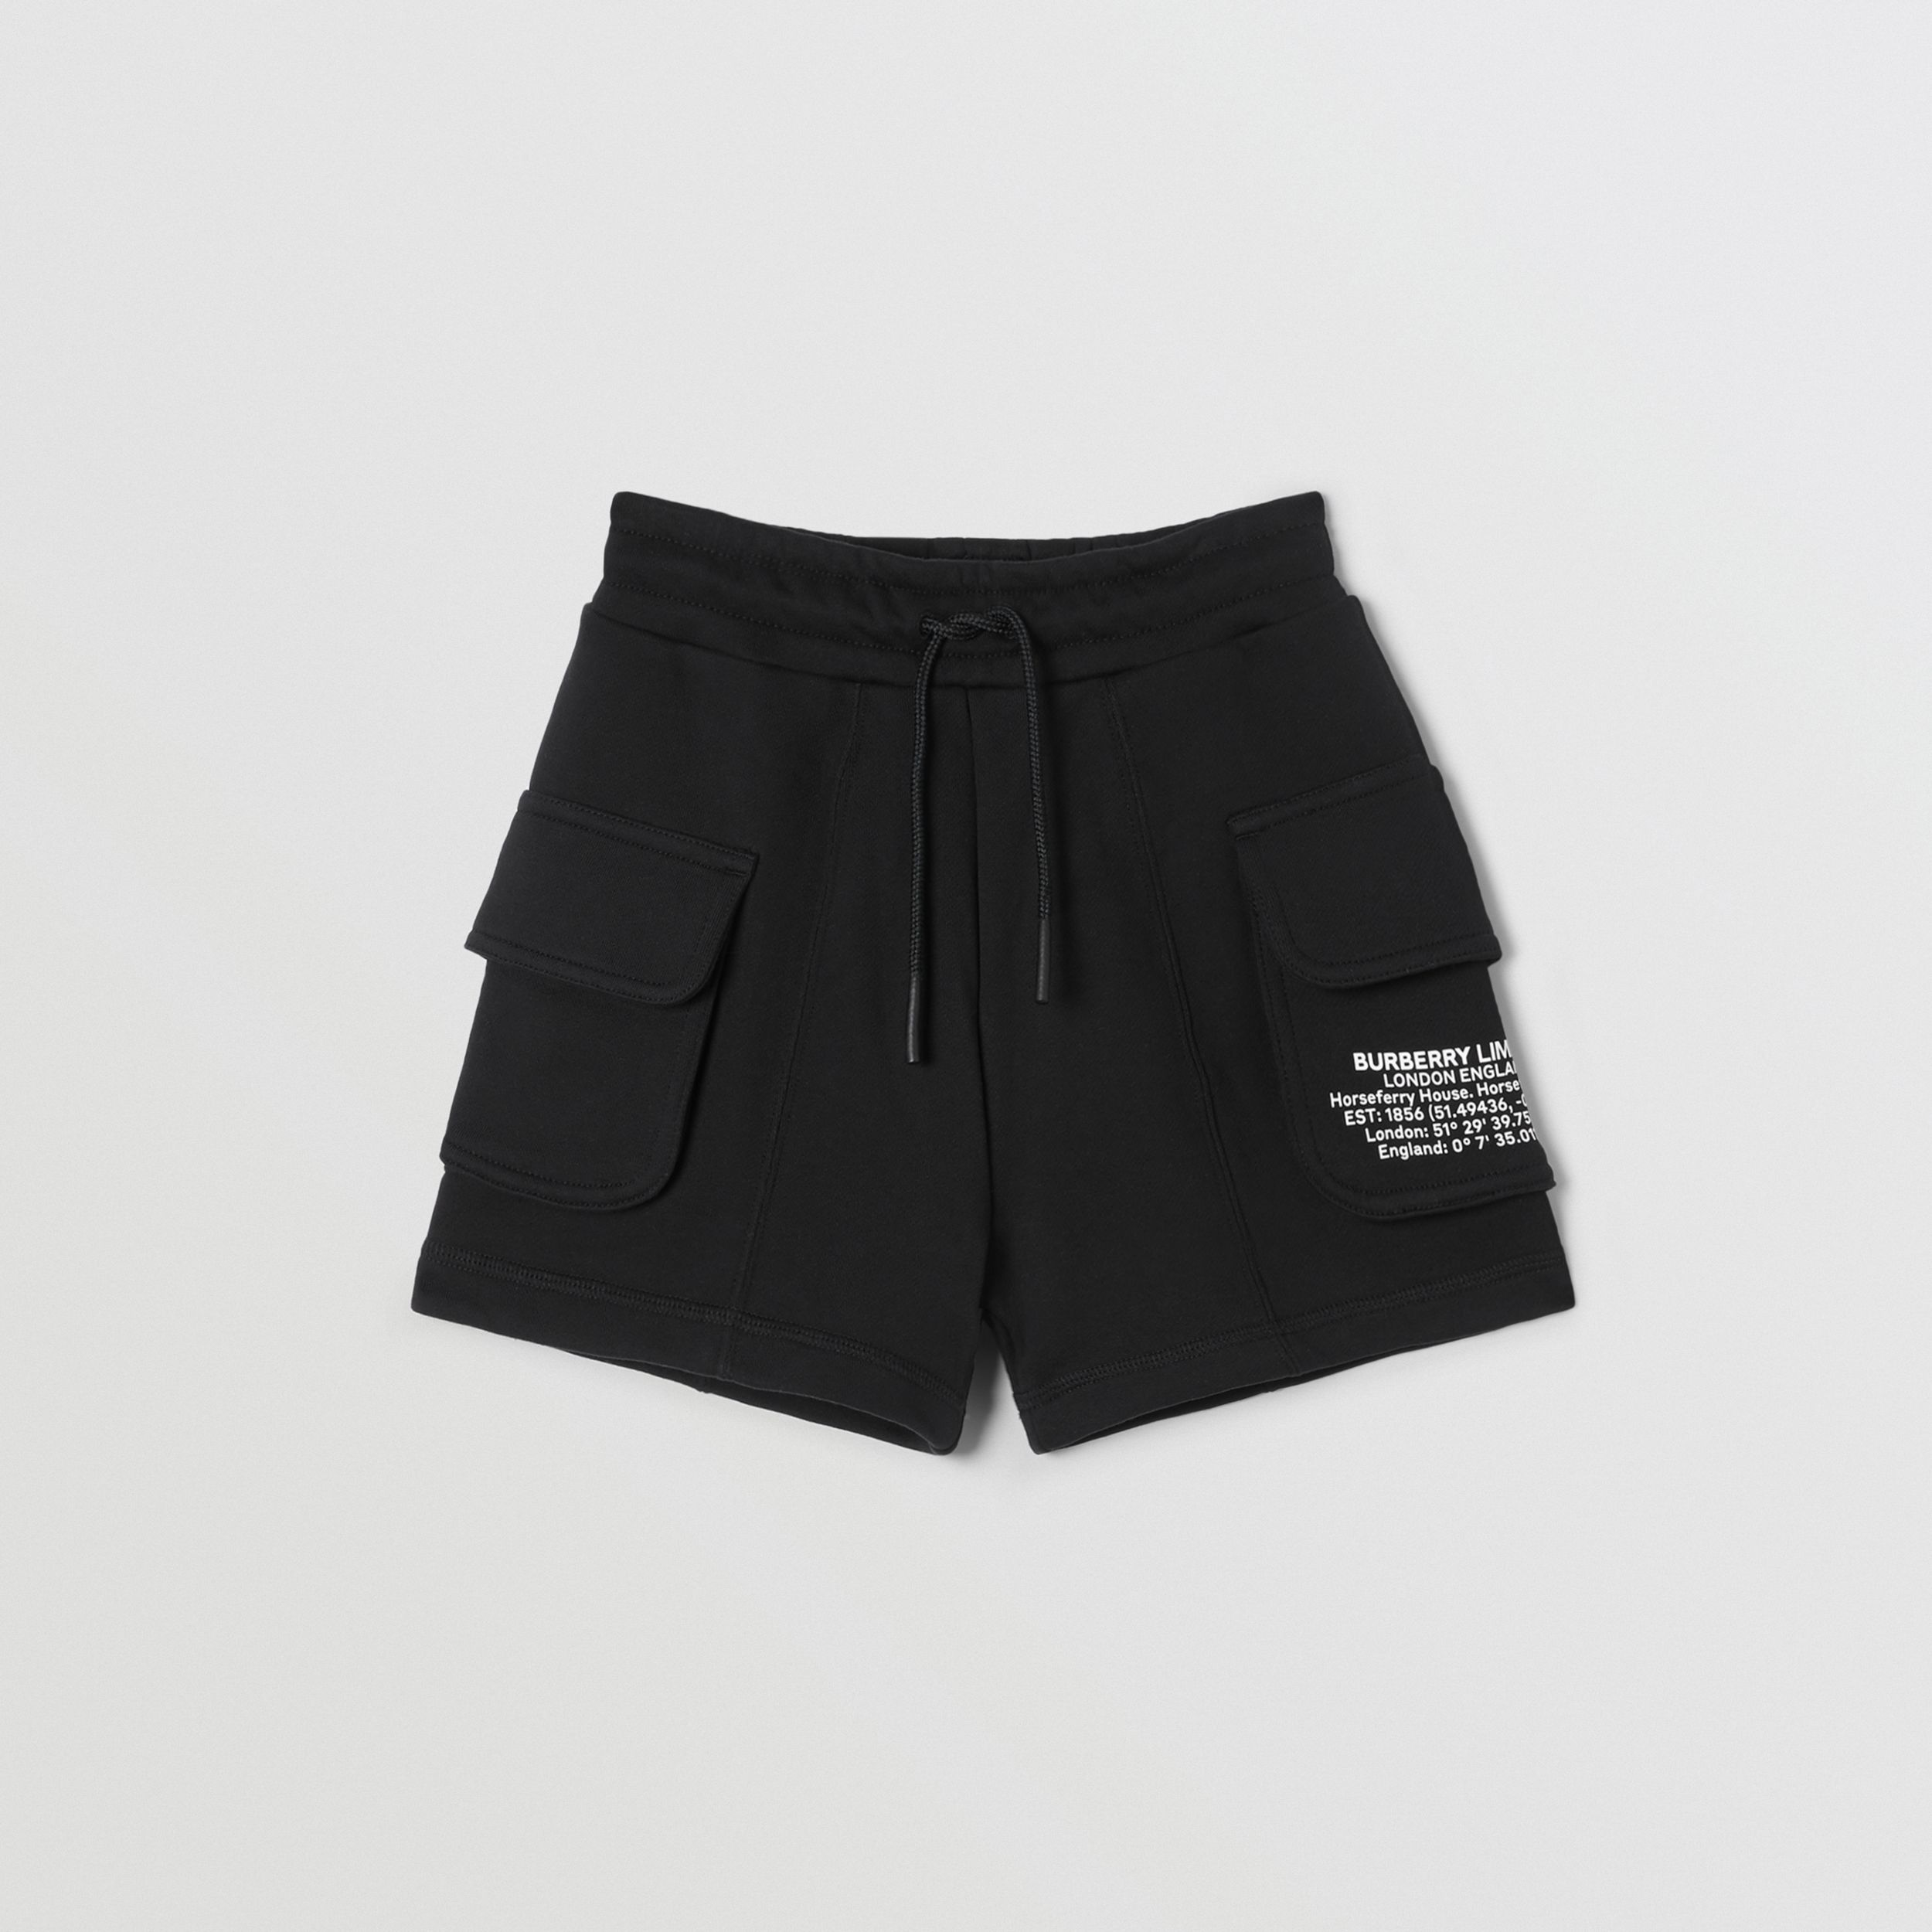 Location Print Cotton Drawcord Shorts in Black | Burberry Canada - 1